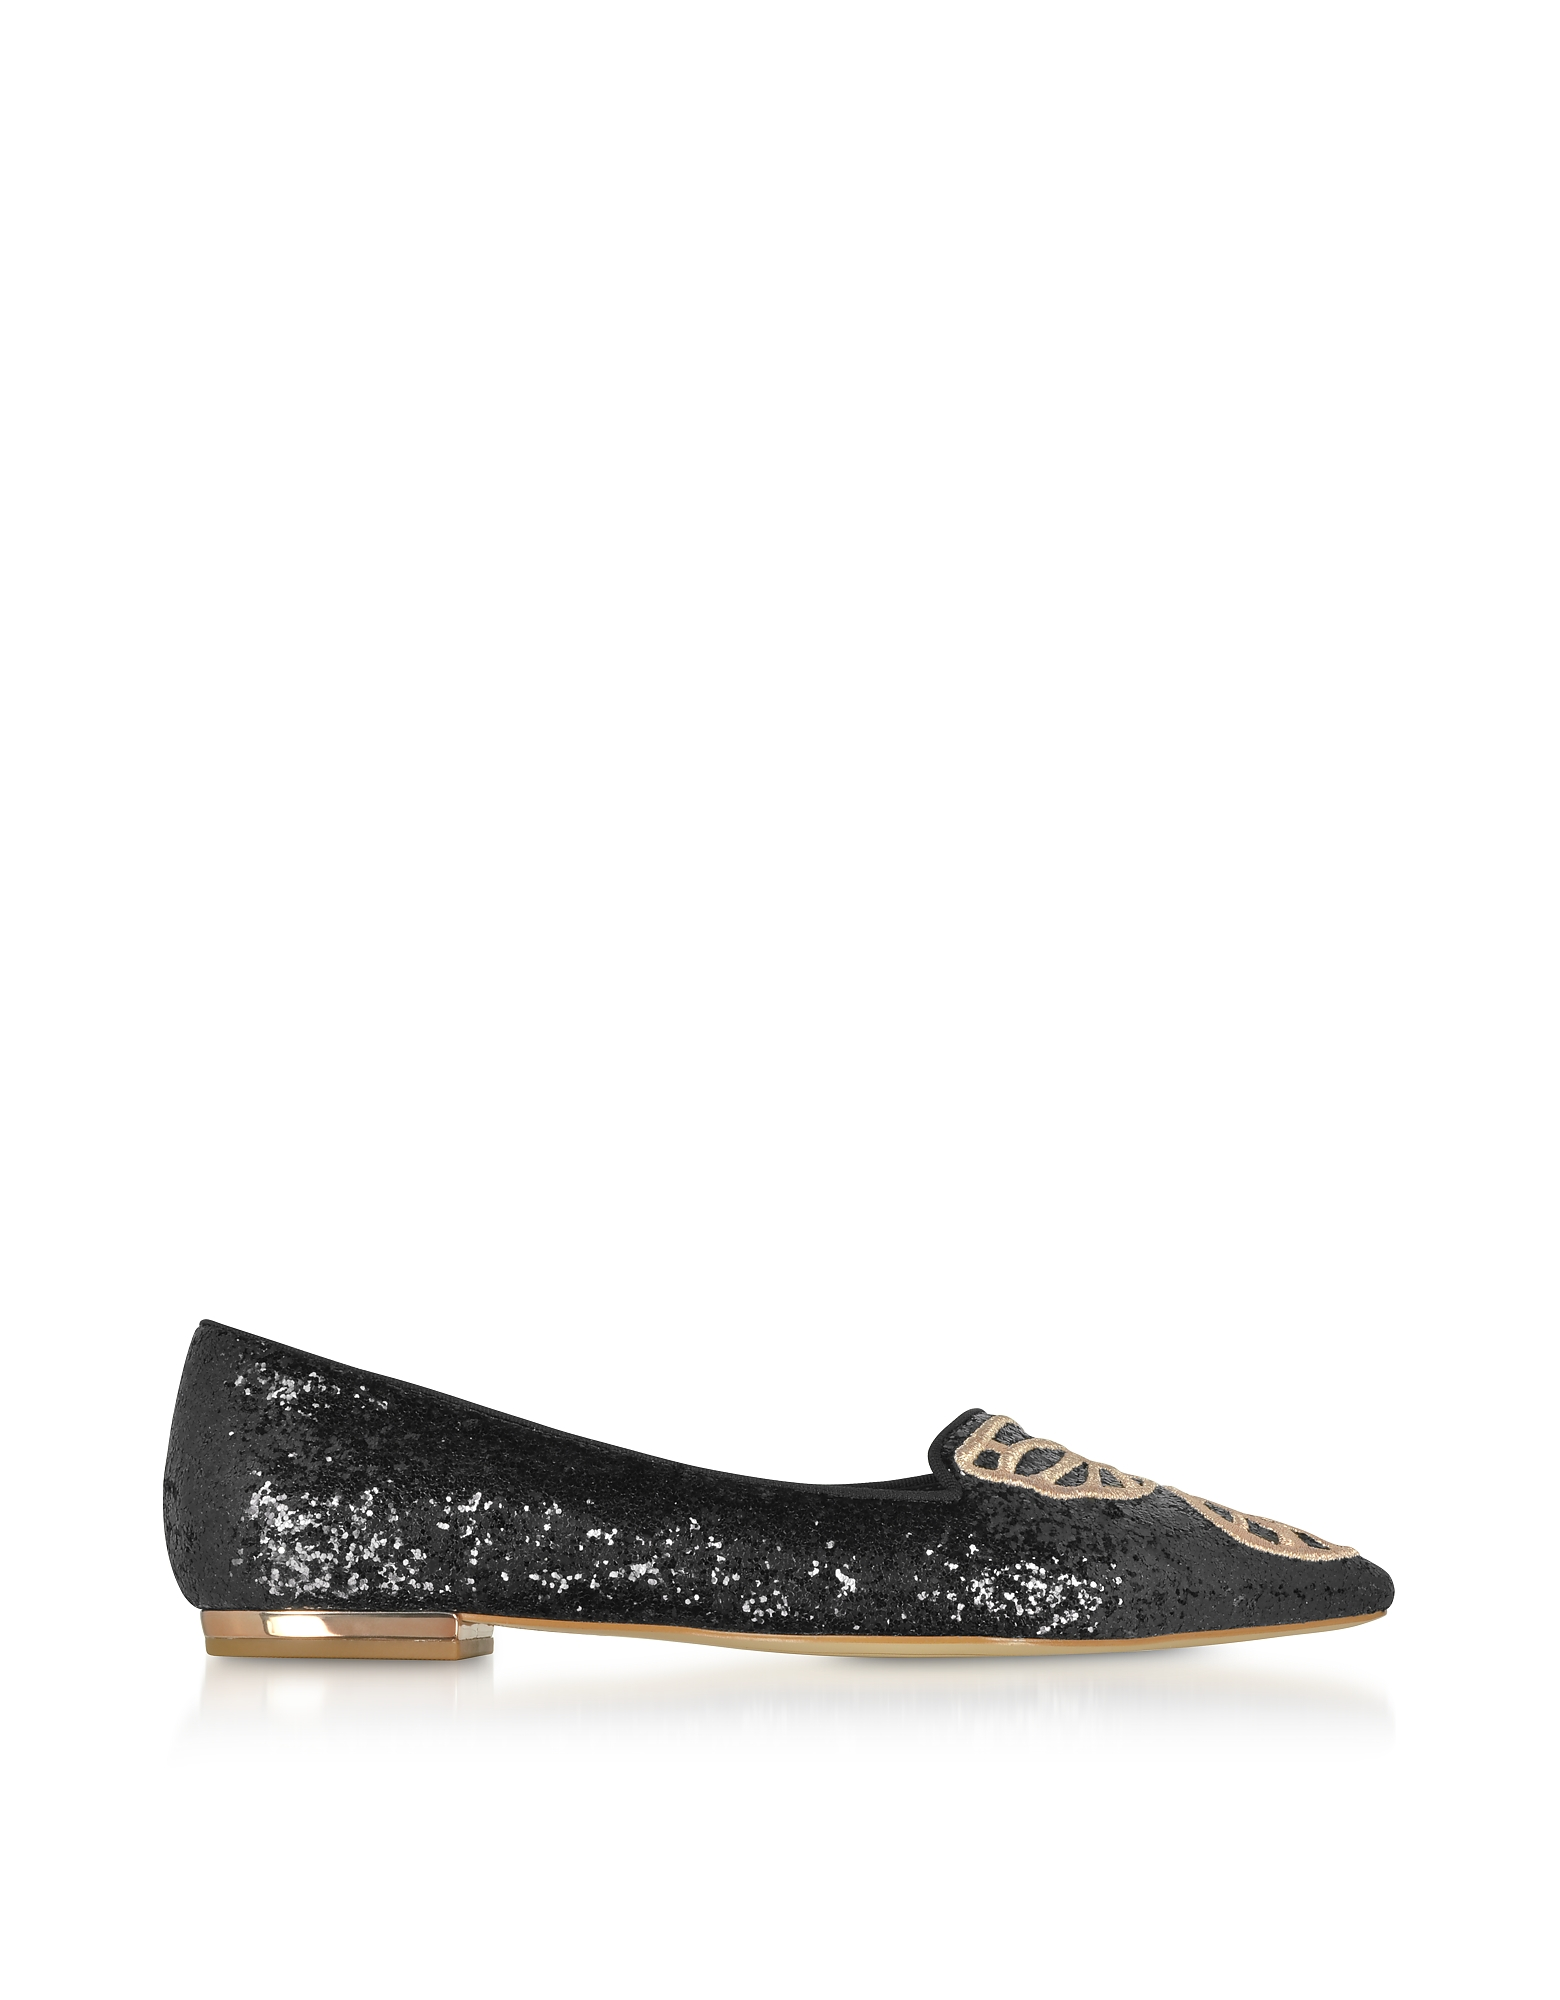 Sophia Webster Shoes, Black and Rose Gold Bibi Butterfly Flat Ballerinas